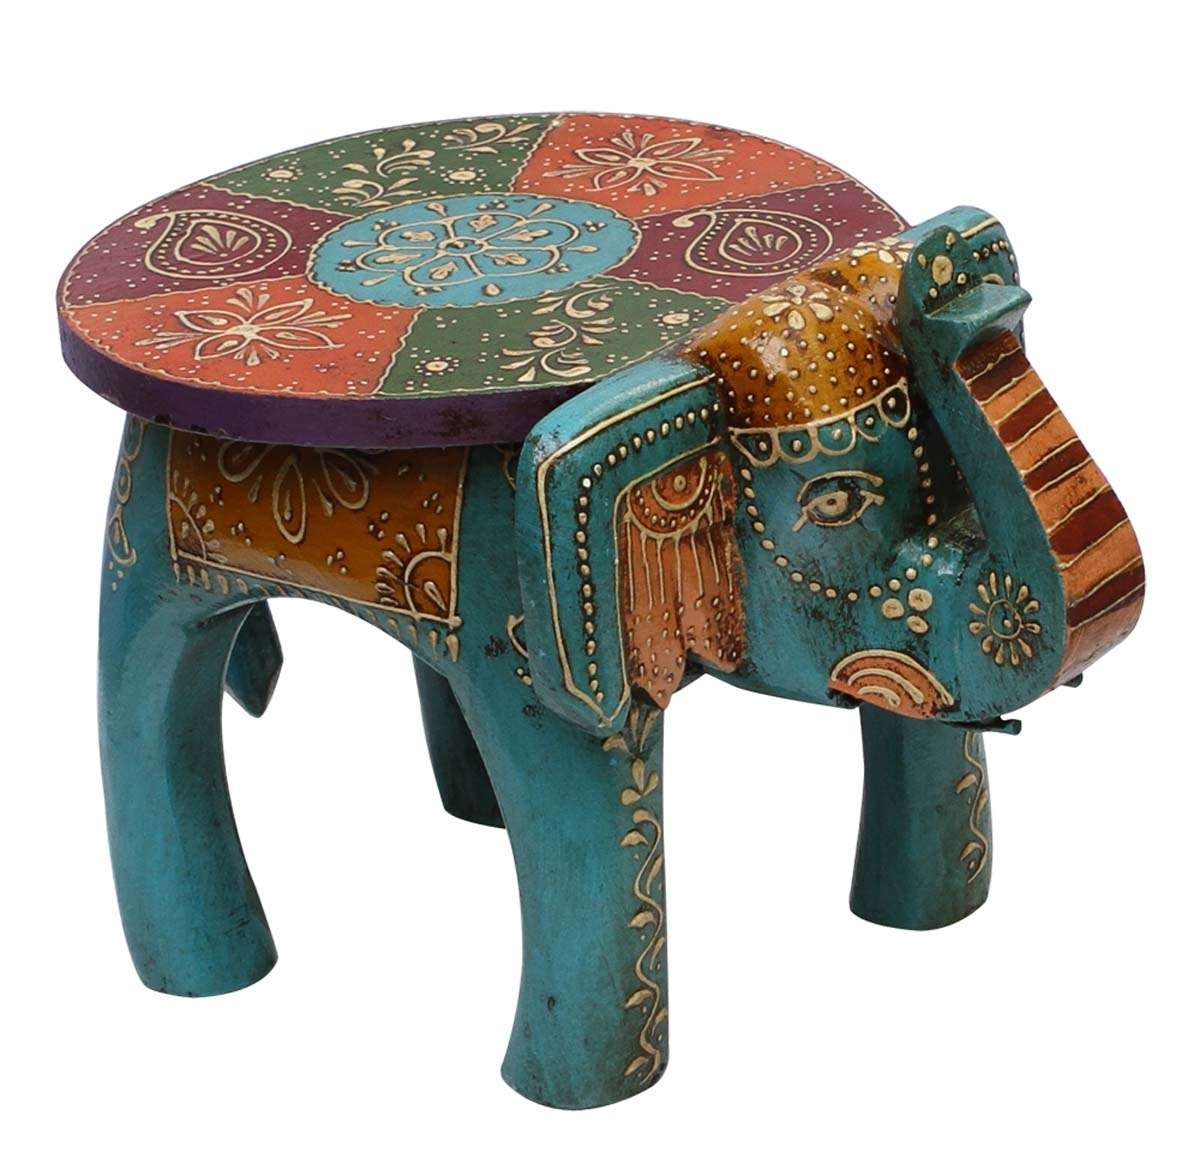 "Bulk Wholesale Handmade 10"" Elephant Shaped Wooden Round Blue Throughout Newest Elephant Coffee Tables (View 3 of 20)"